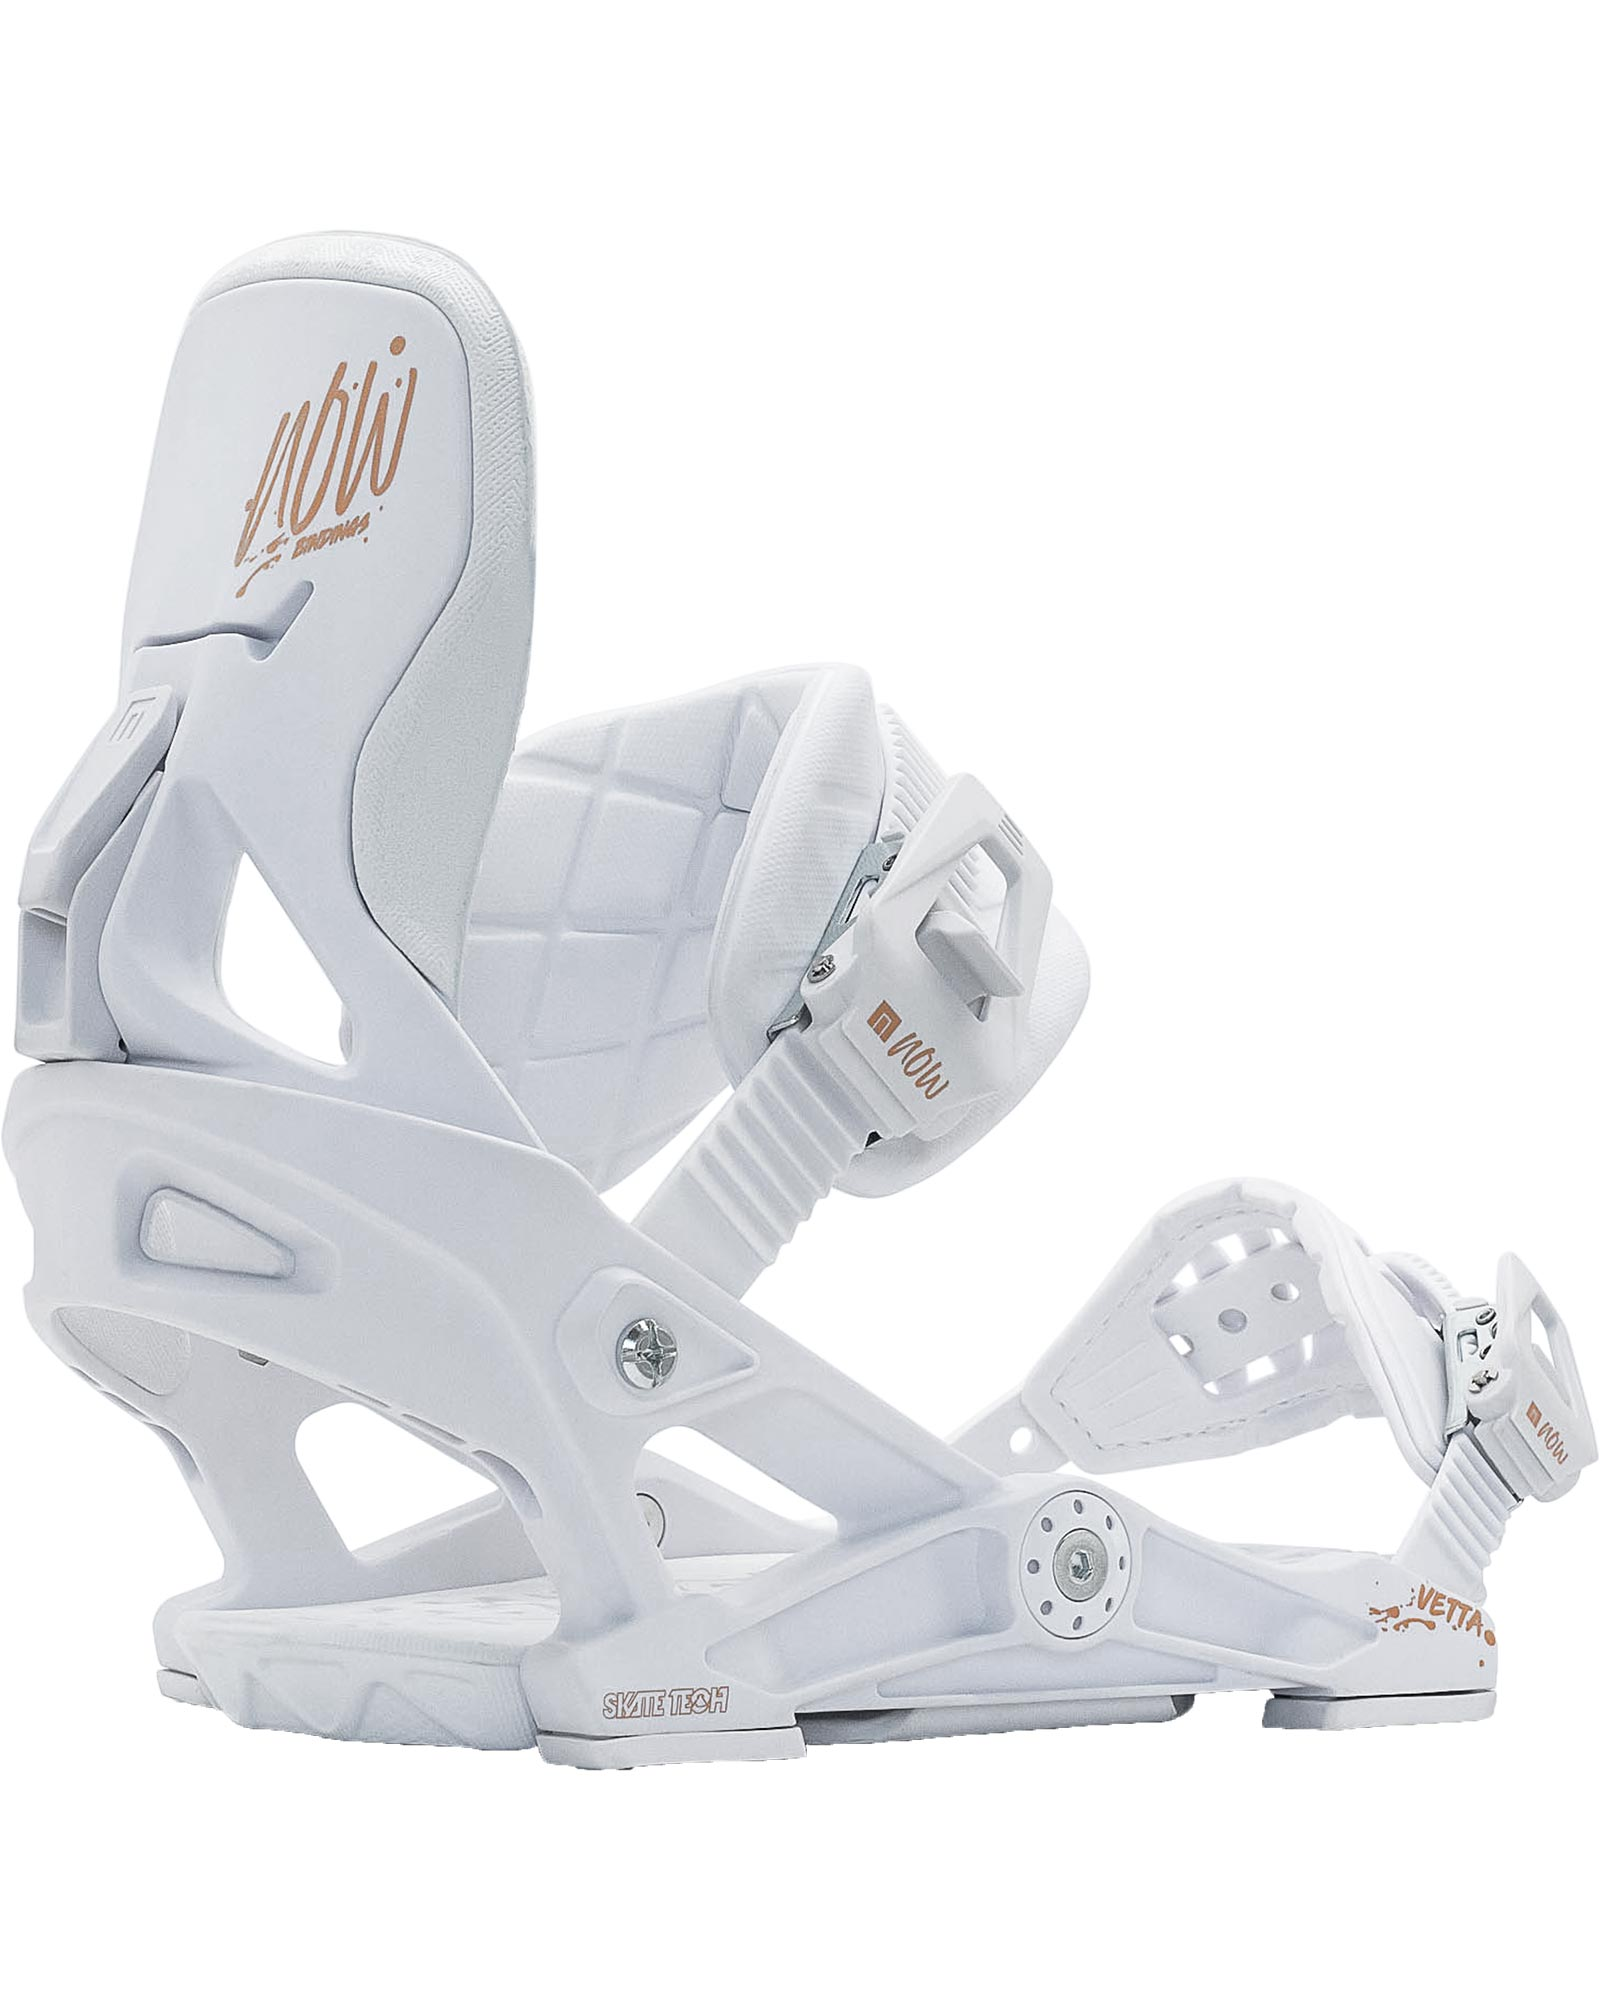 NOW Vetta Women's Snowboard Bindings 2021 0